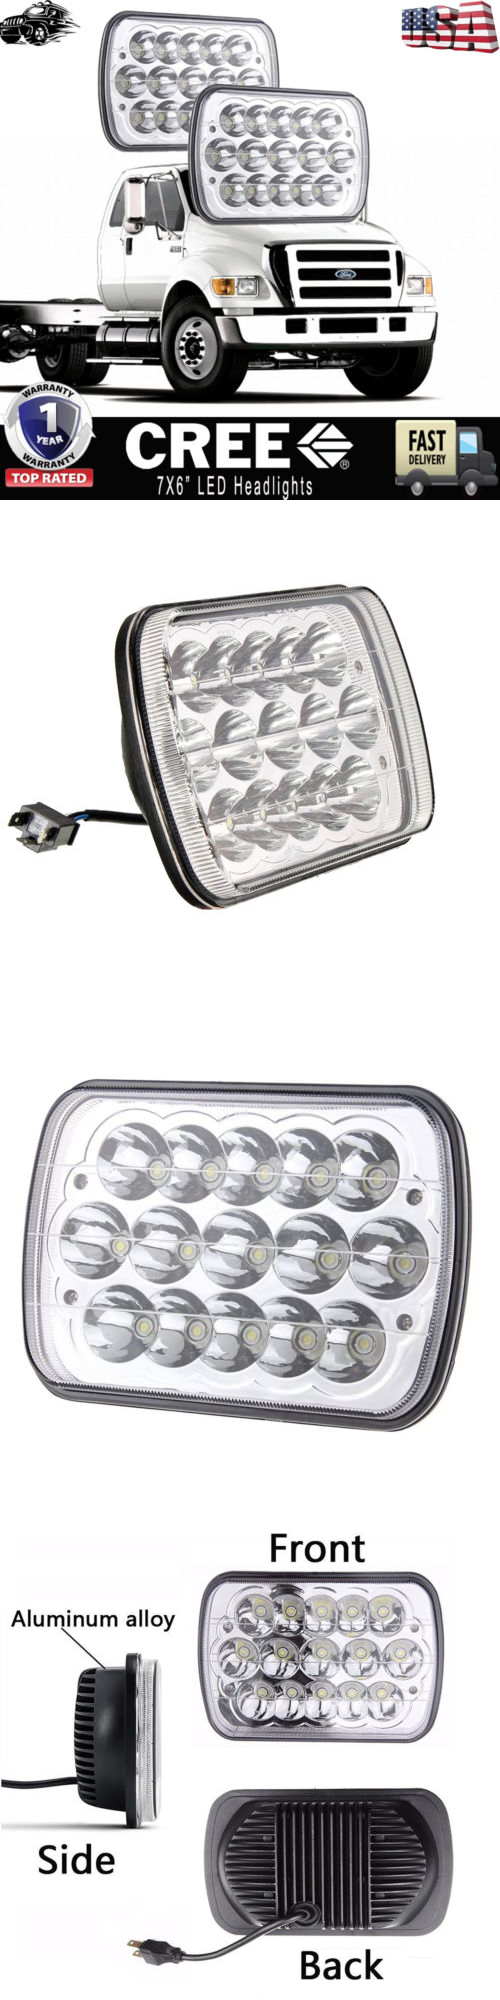 hight resolution of car lighting 7x6 led headlight upgrade for ford super duty truck f550 f600 f650 f700 f750 buy it now only 65 0